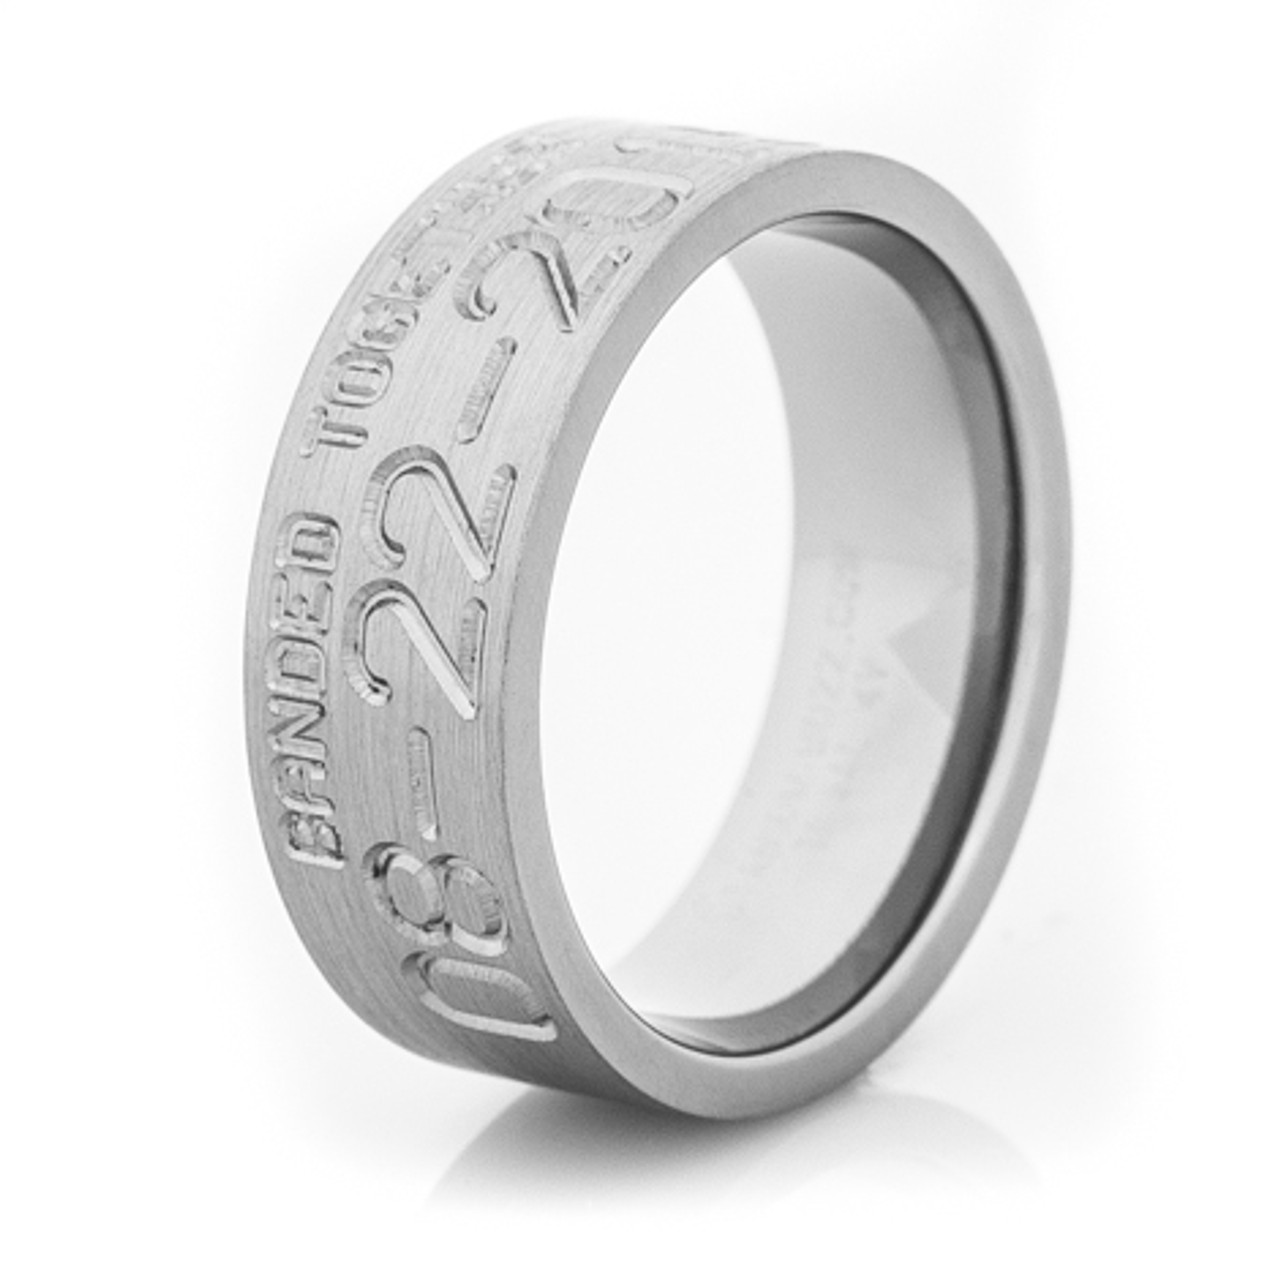 Mens Banded Together Duck Band Wedding Ring TitaniumBuzz